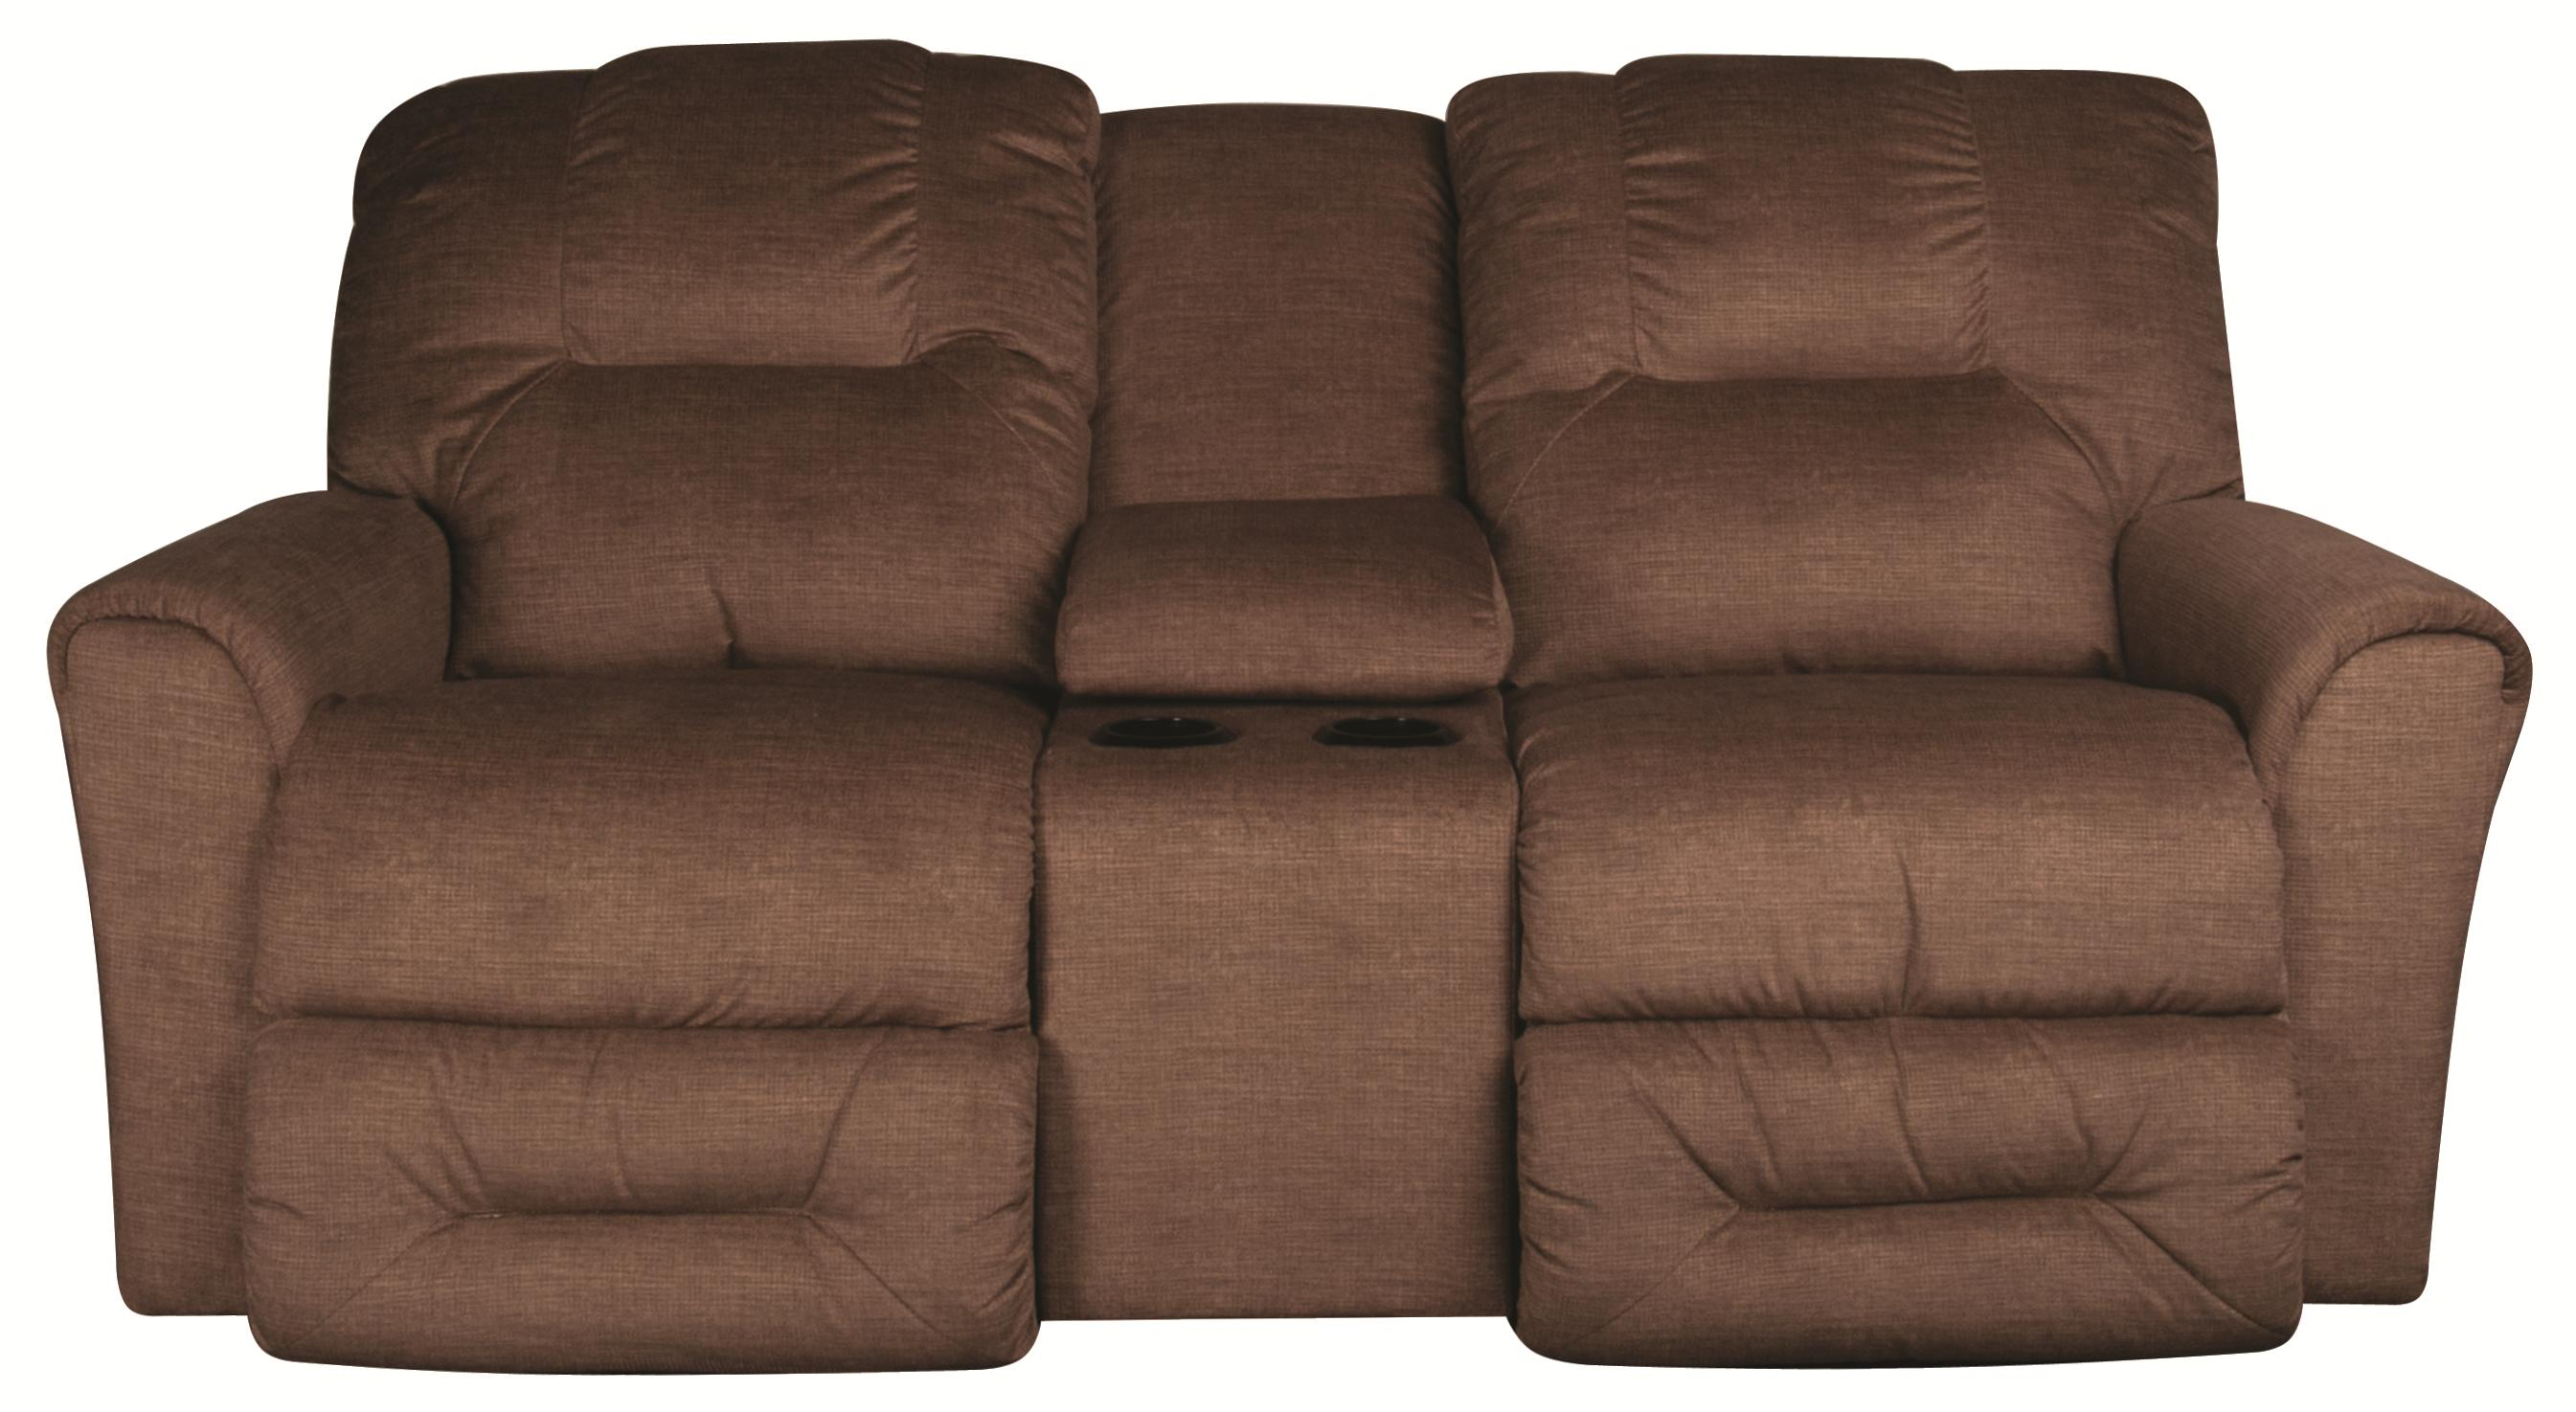 La-Z-Boy Easton Easton Power Reclining Loveseat with Console - Item Number: 105810043